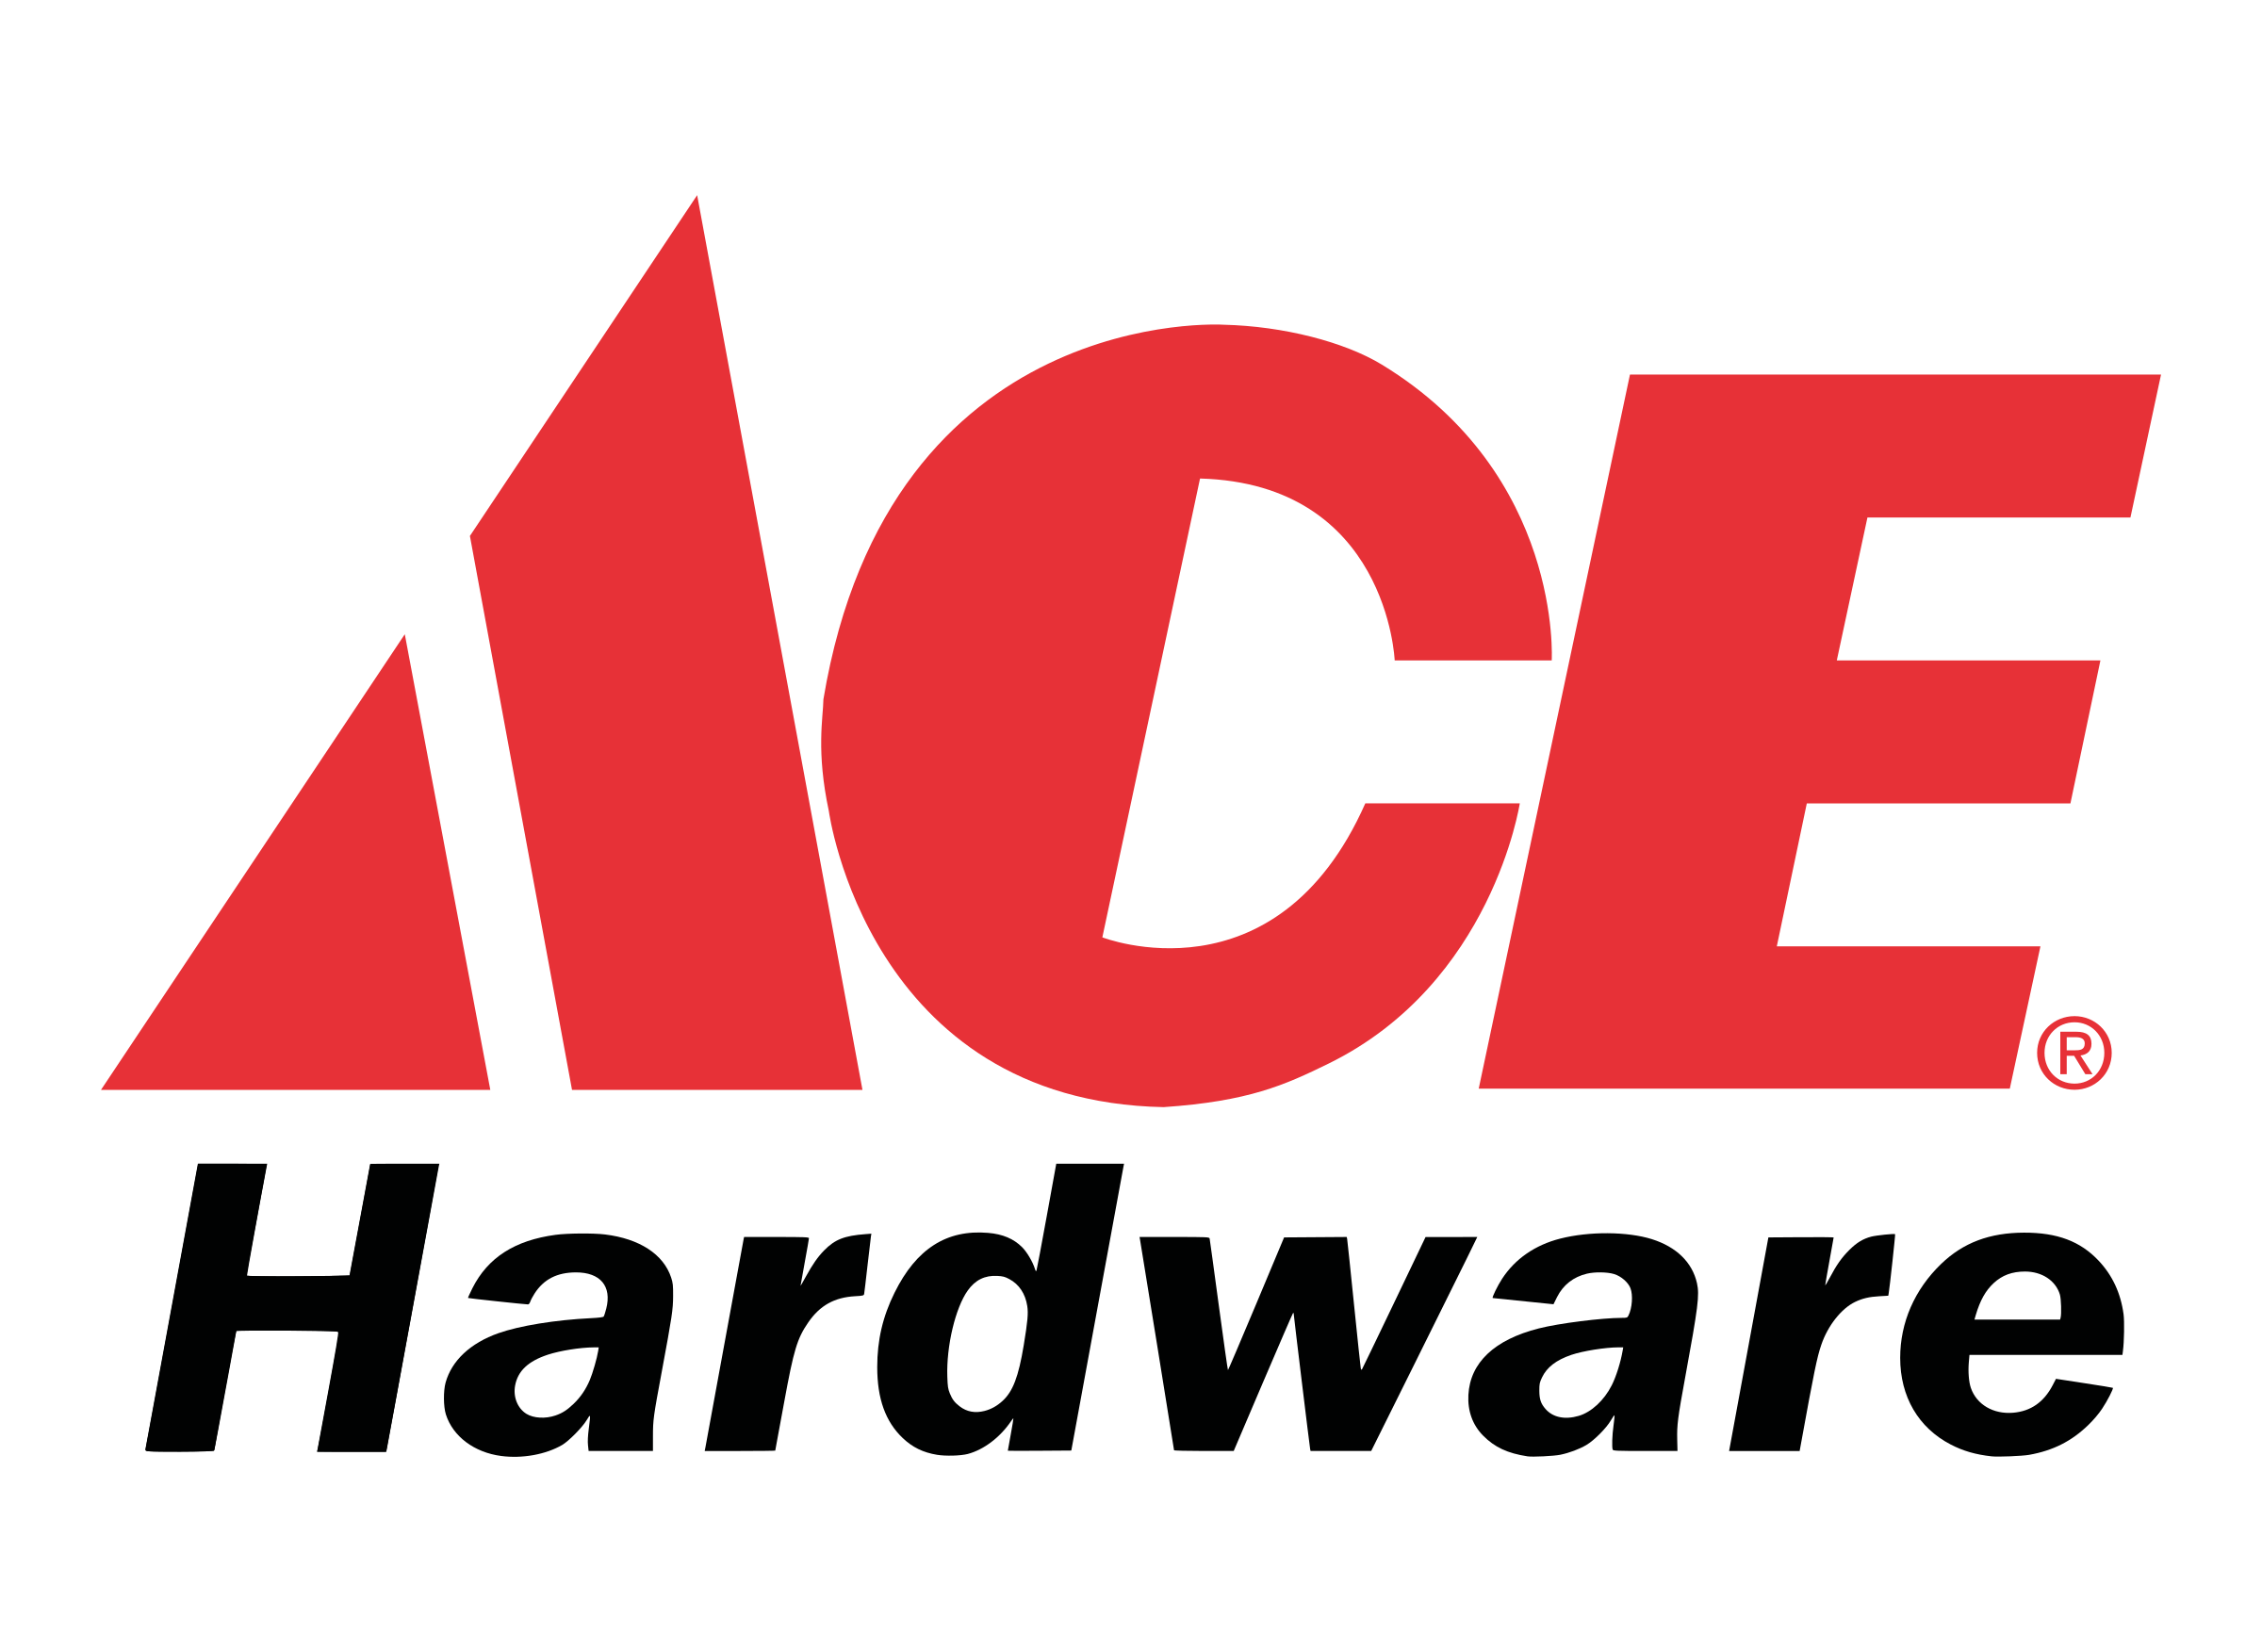 ace-hardware-logo-png-transparent